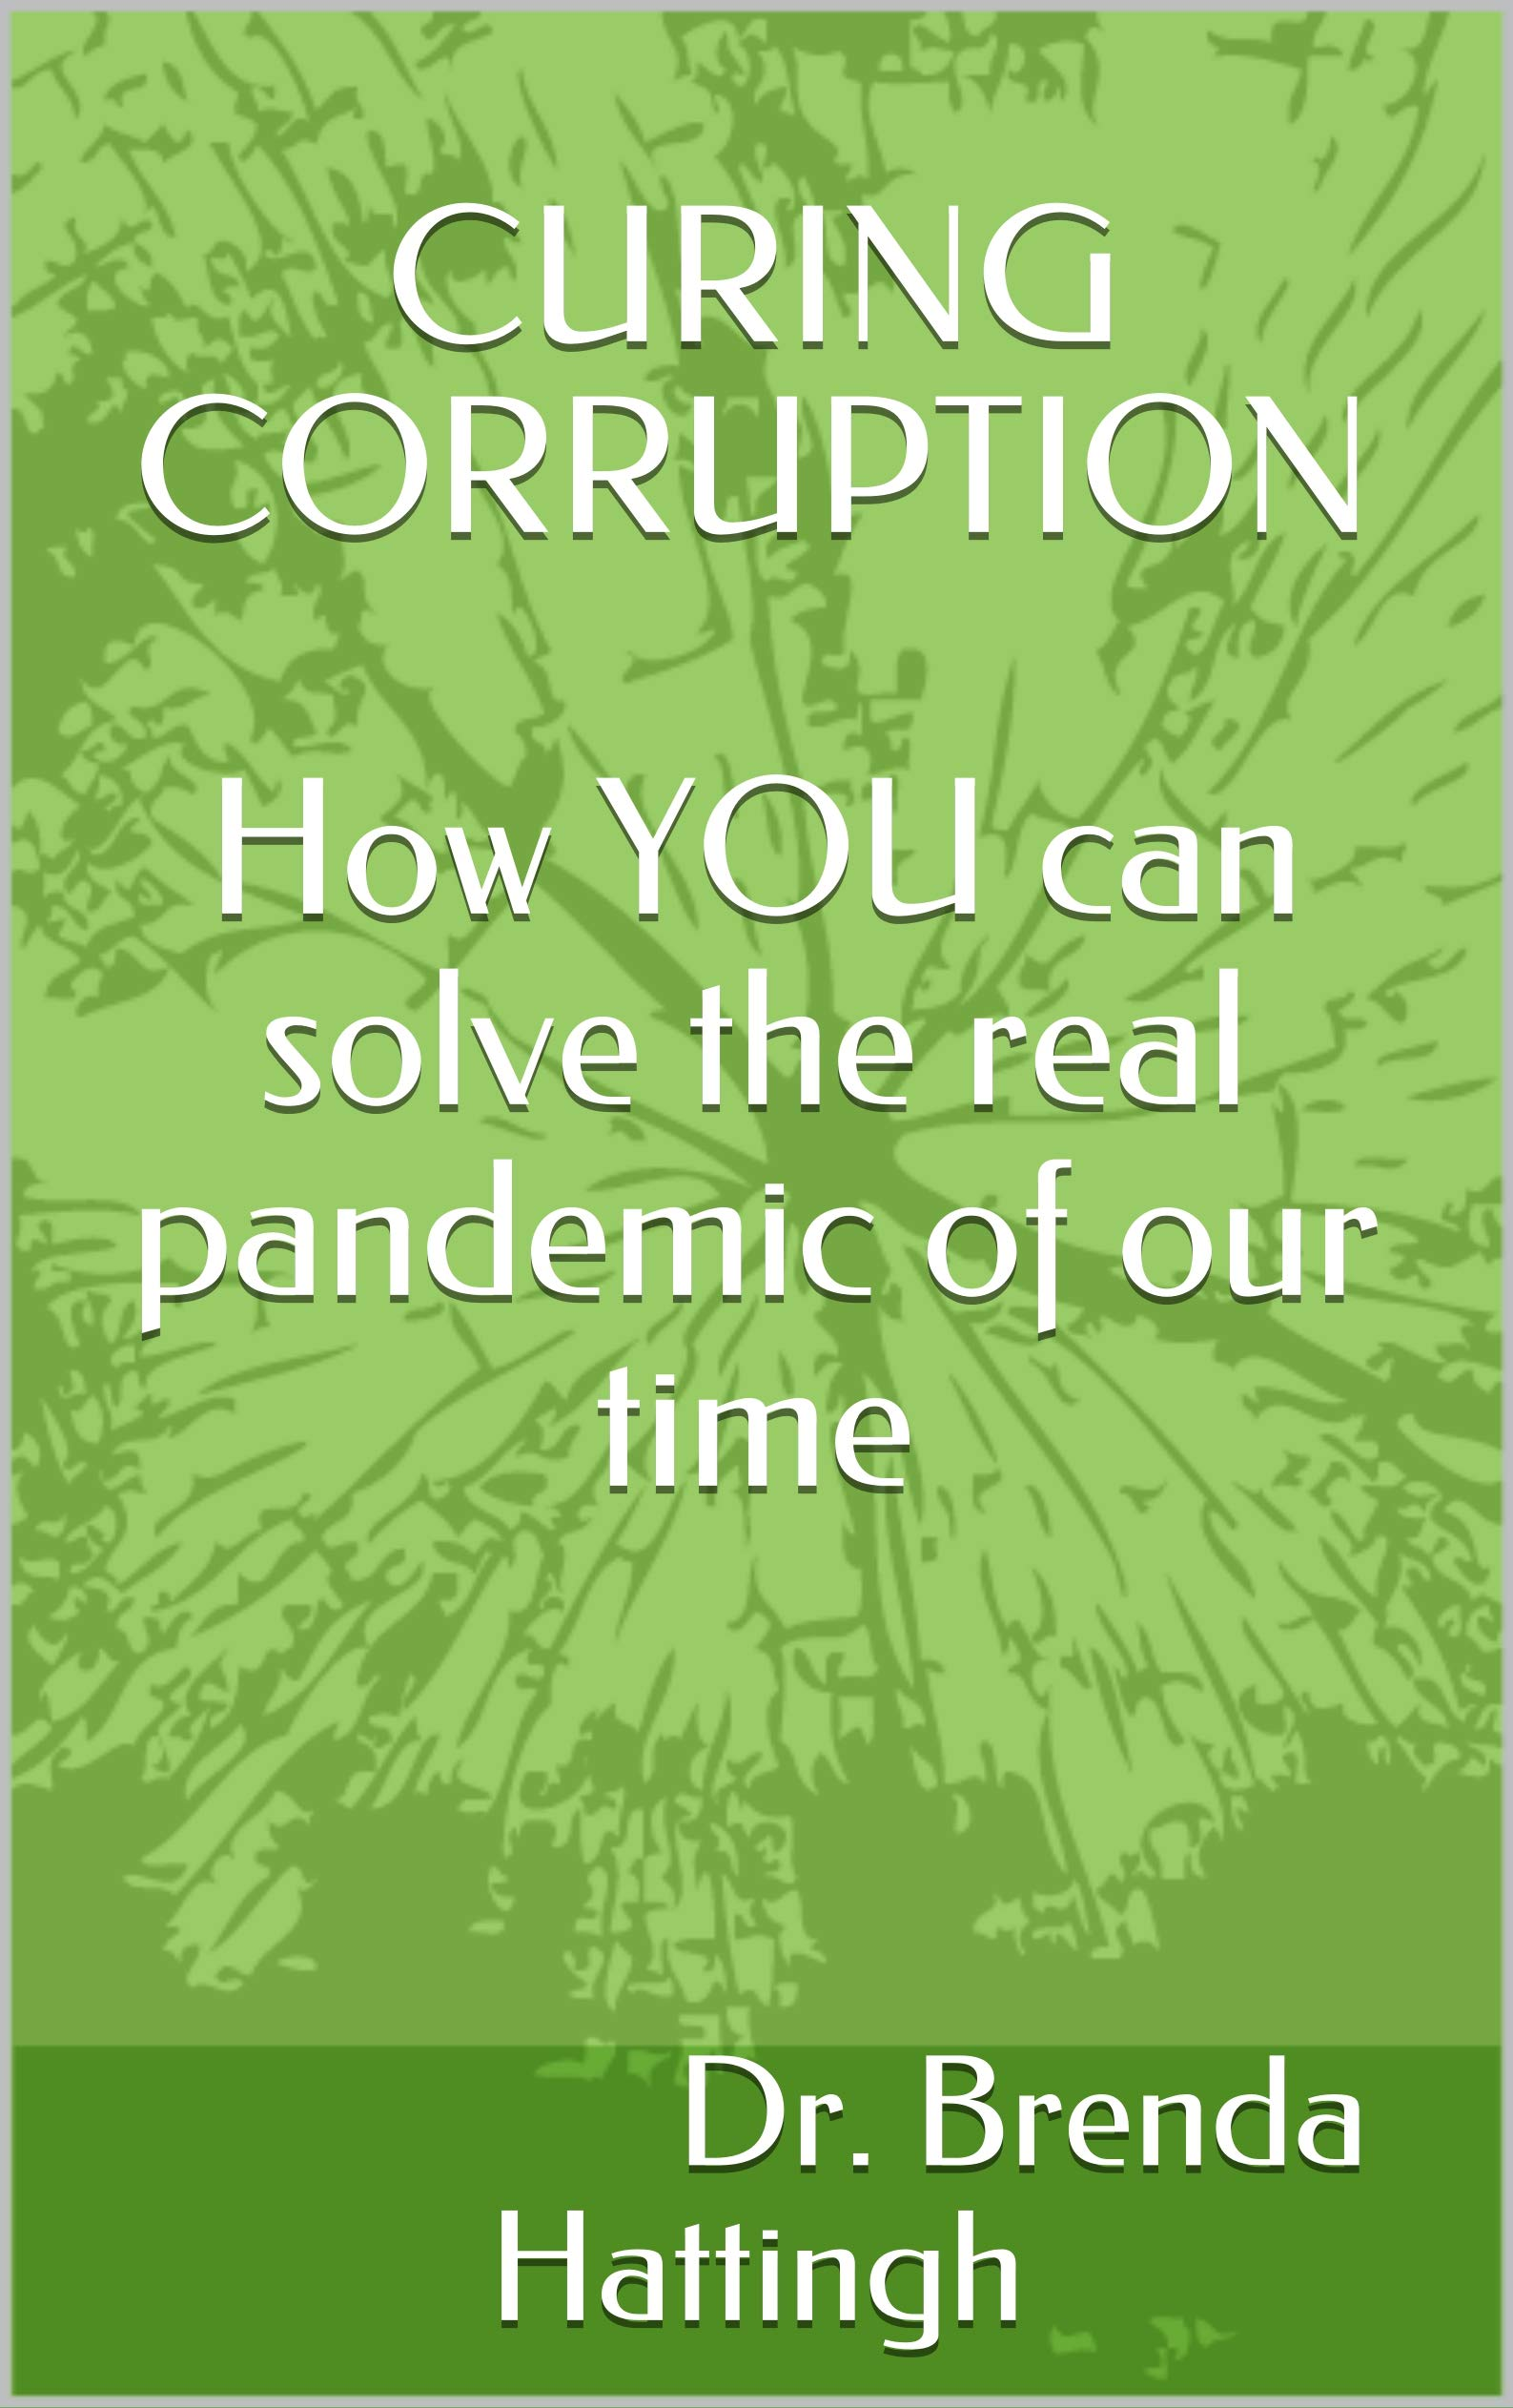 CURING CORRUPTION How YOU can solve the real pandemic of our time